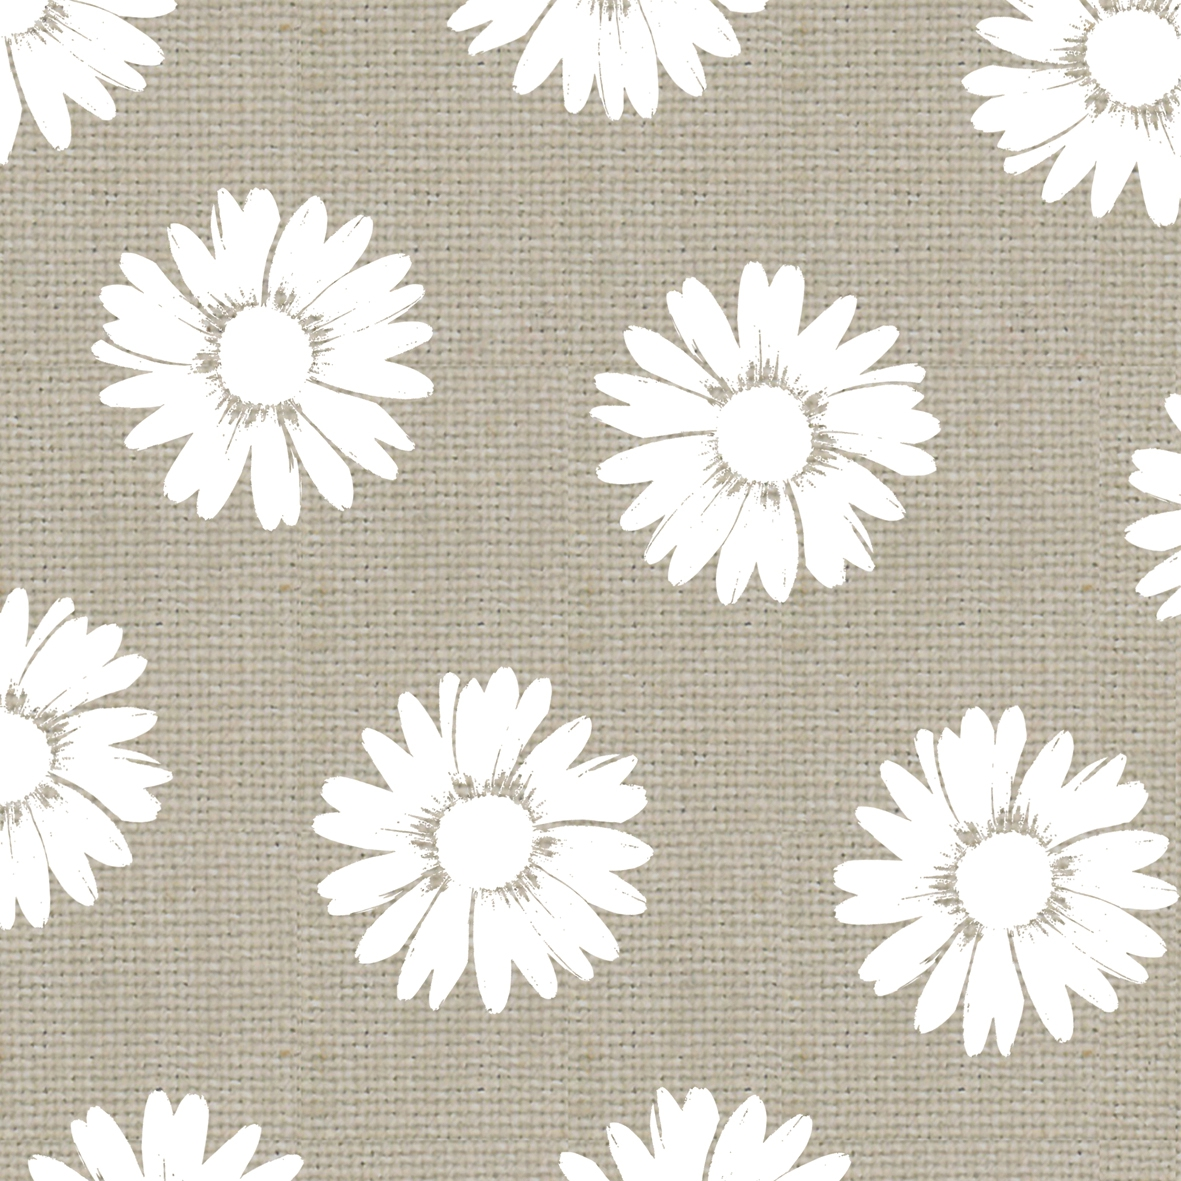 Lunch Servietten Fashion Daisies taupe white     ,  Blumen -  Sonstige,  Everyday,  lunchservietten,  Blumen